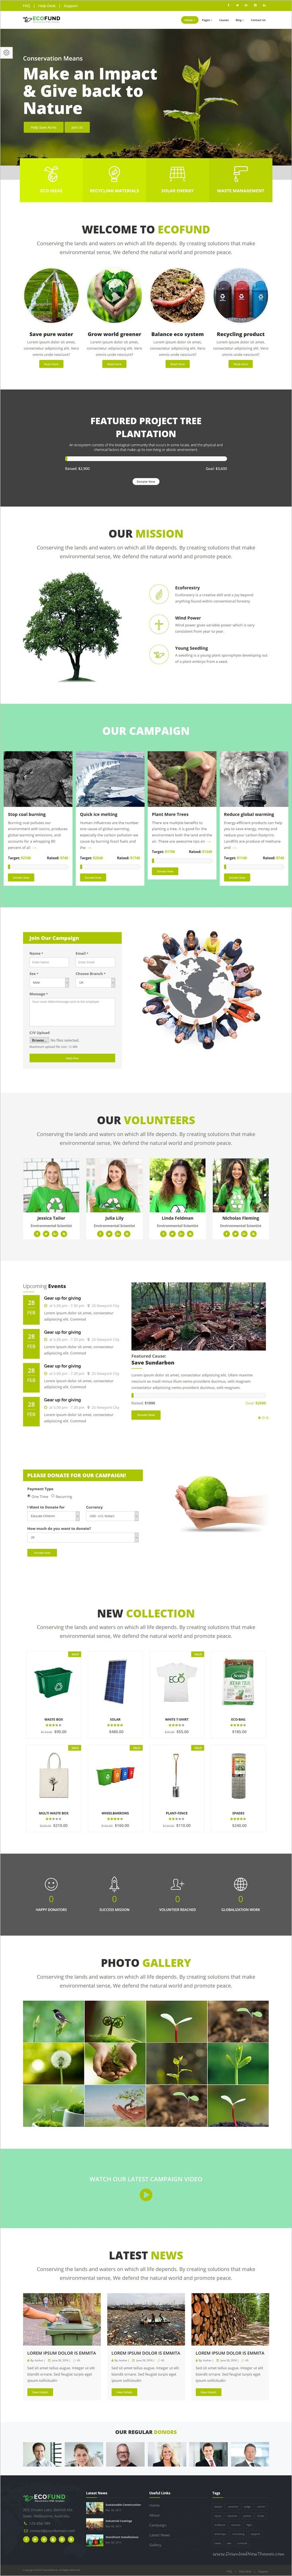 EcoFund is a wonderful responsive 2in1 #HTML5 bootstrap #template or charity, #NGO, non-profit organization, #donation, church or a fundraising websites download now➩ https://themeforest.net/item/ecofund-nonprofit-environment-recyling-solar-html5-template/19177314?ref=Datasata